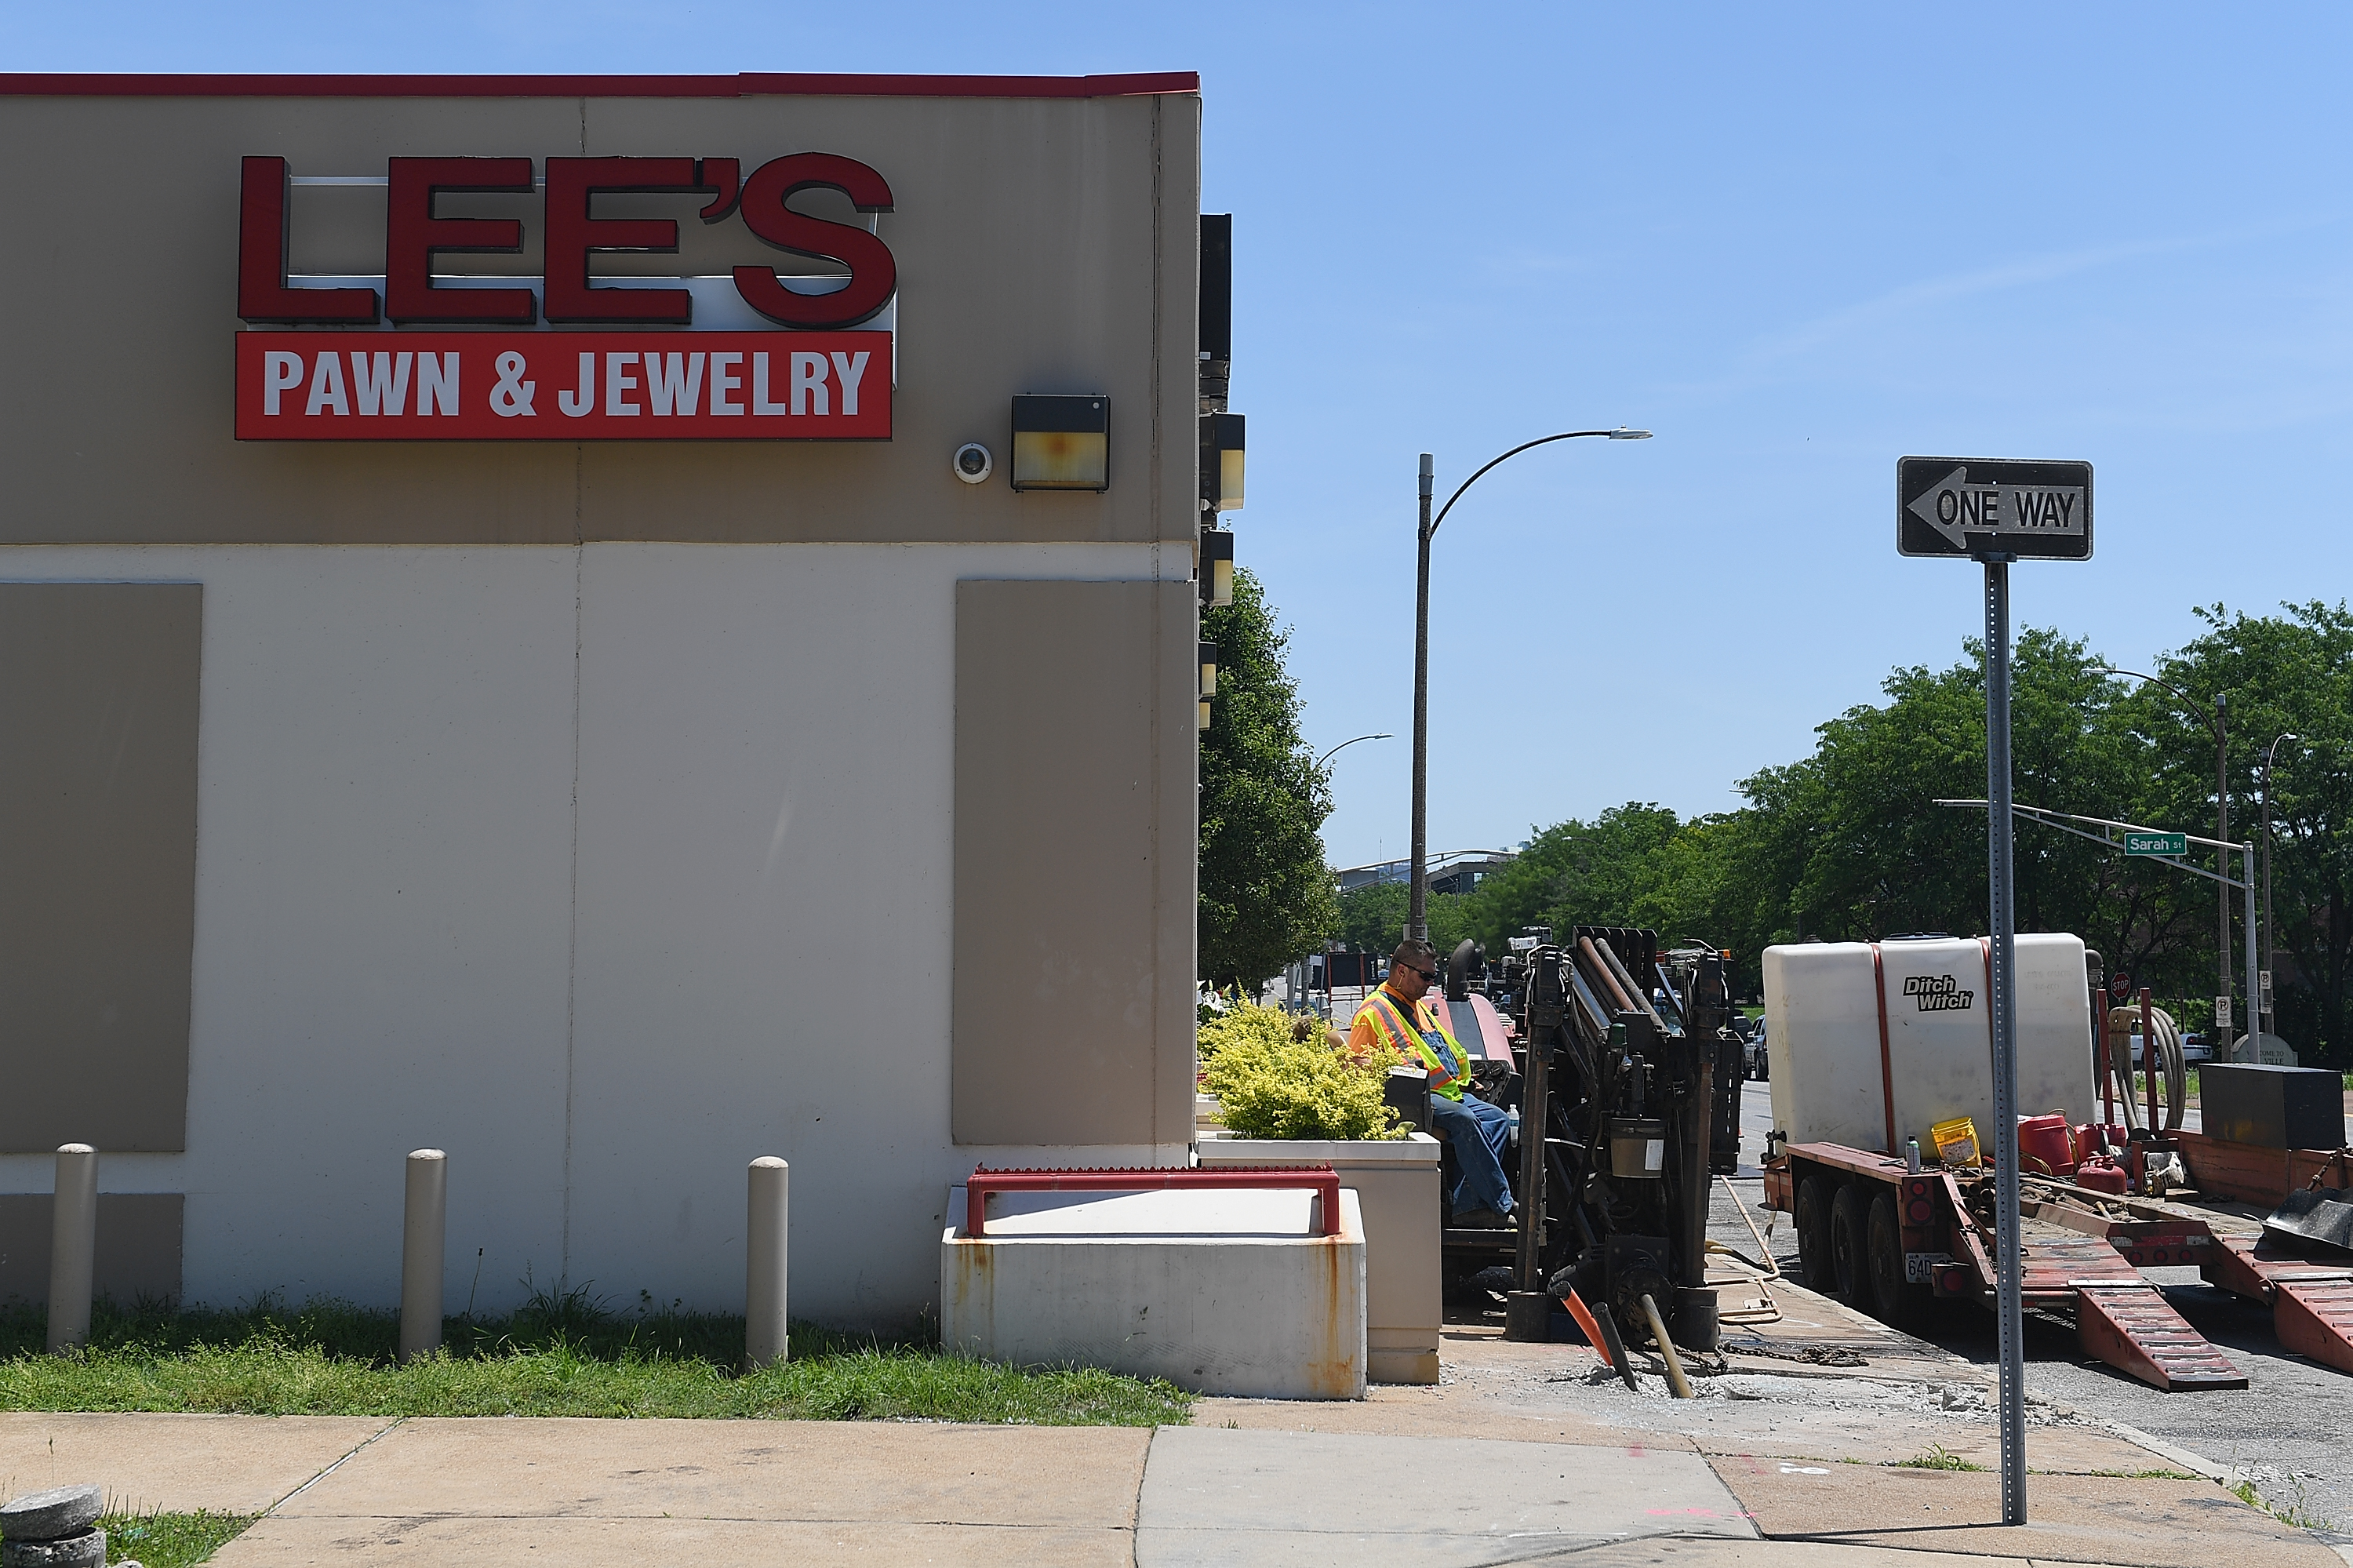 Lee's Pawn and Jewelry